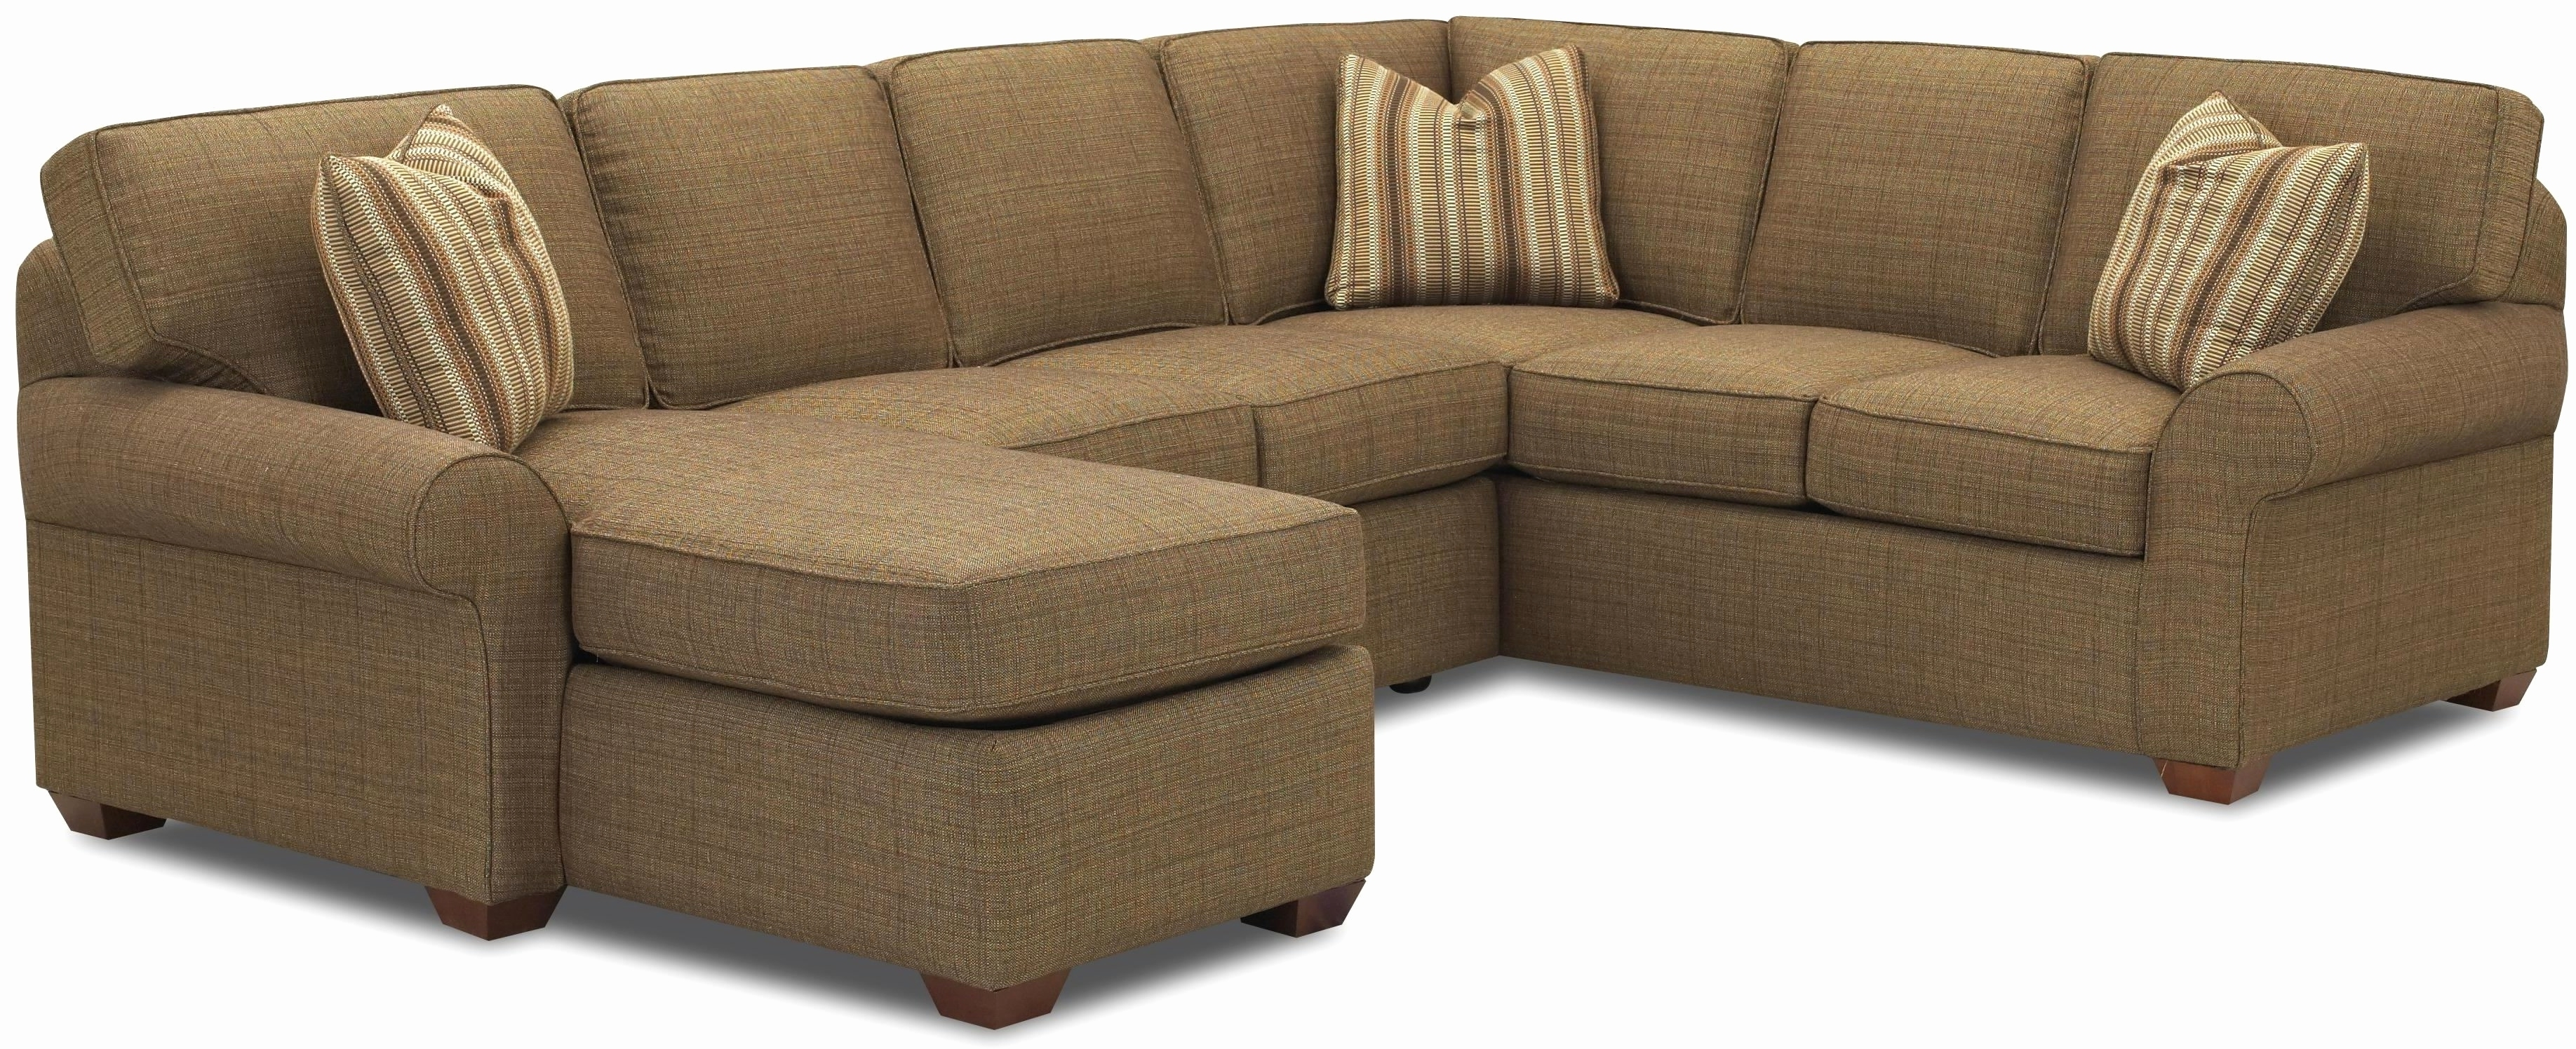 Small Couches With Chaise Throughout Most Current Lovely Small Couch With Chaise 2018 – Couches And Sofas Ideas (View 11 of 15)